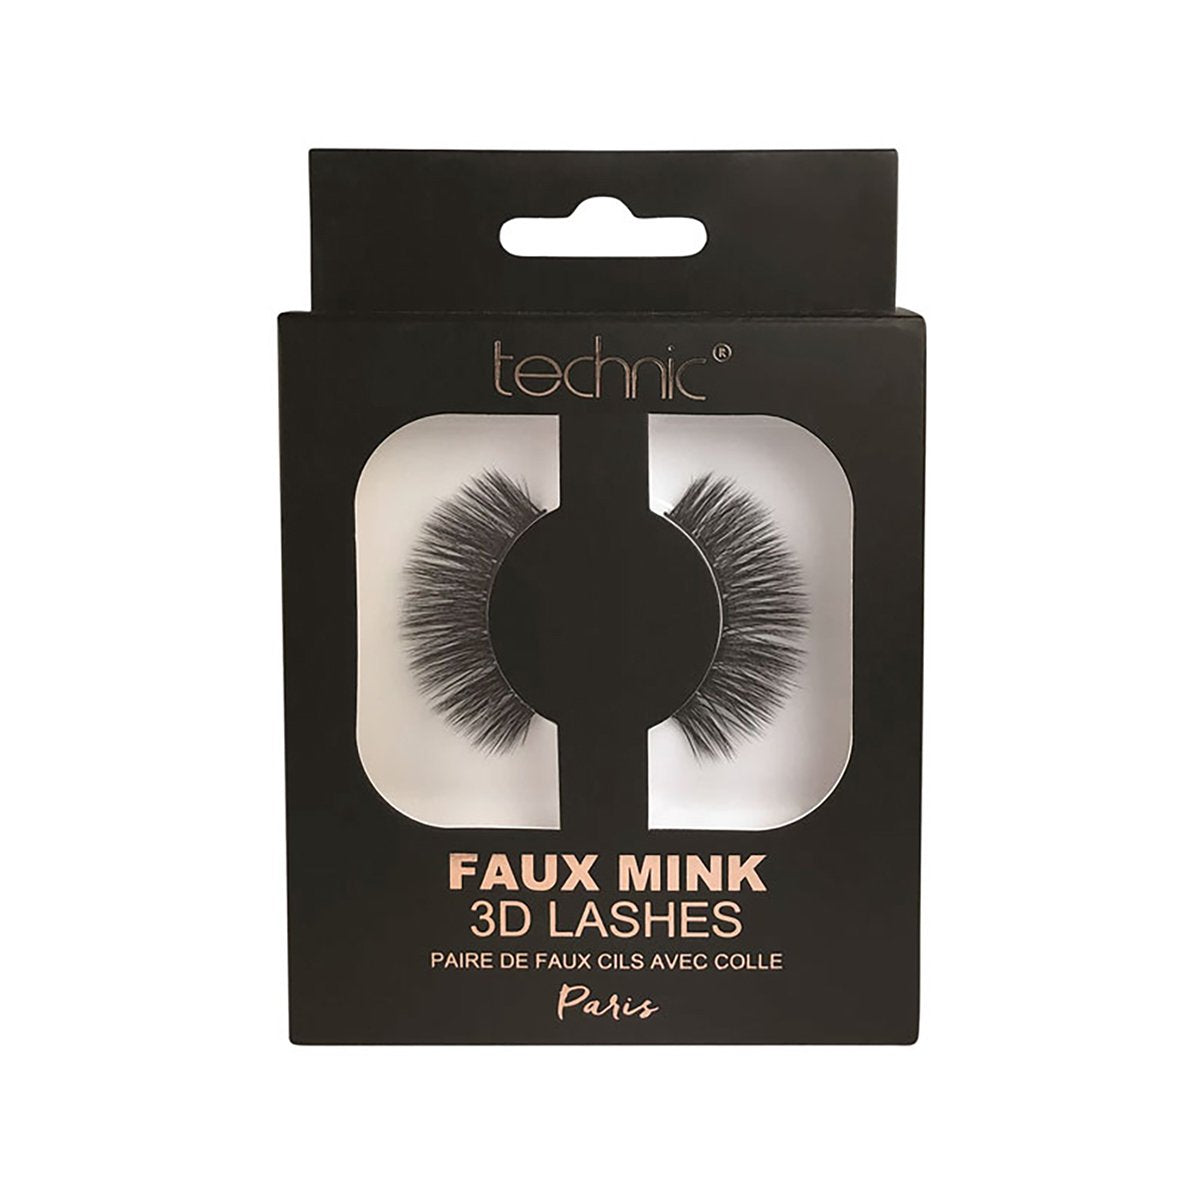 Technic Faux Mink Lashes - Paris